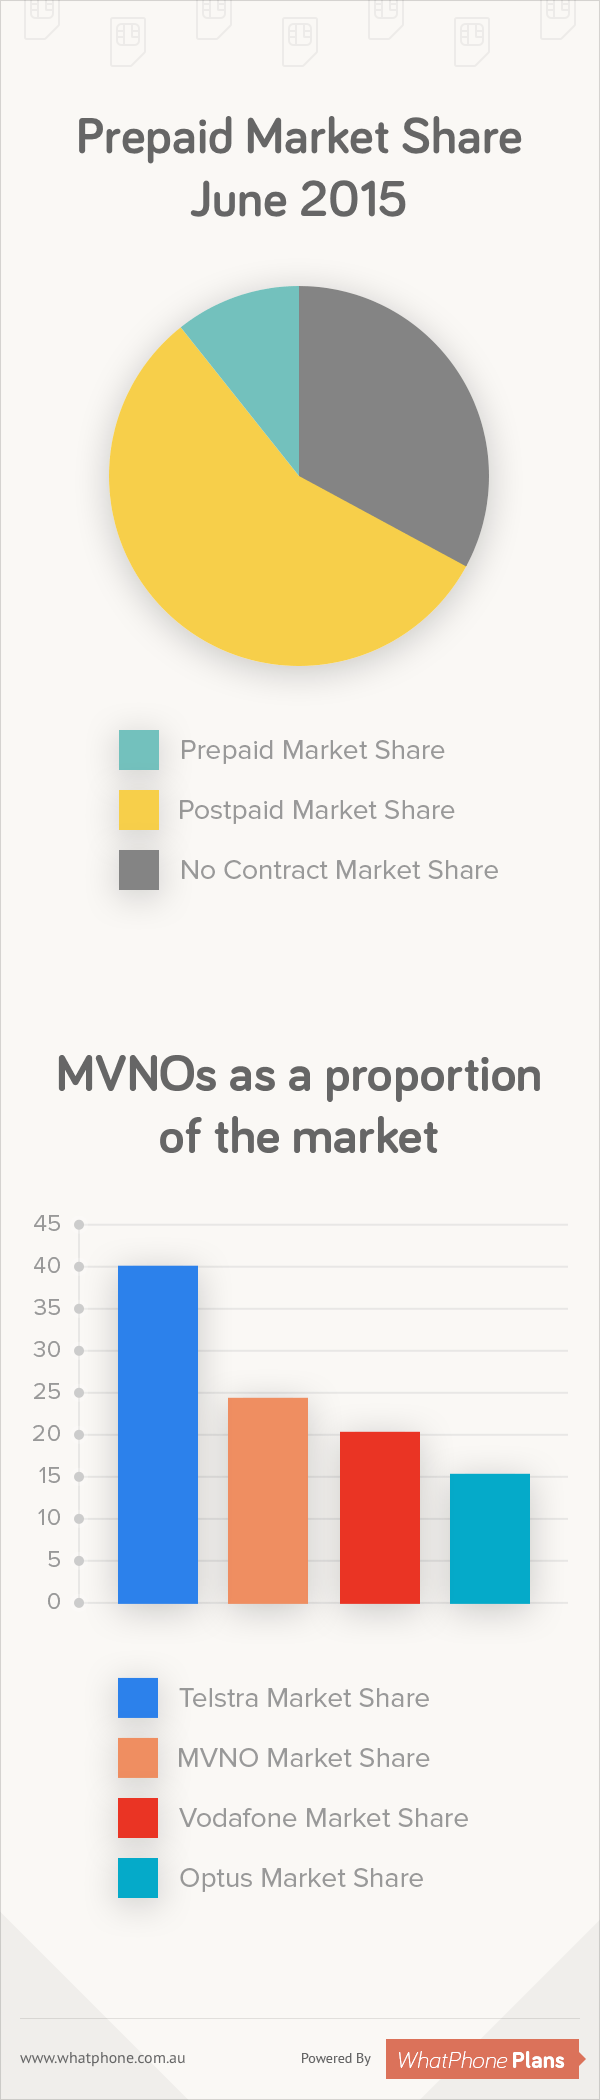 Prepaid Market Share June 2015